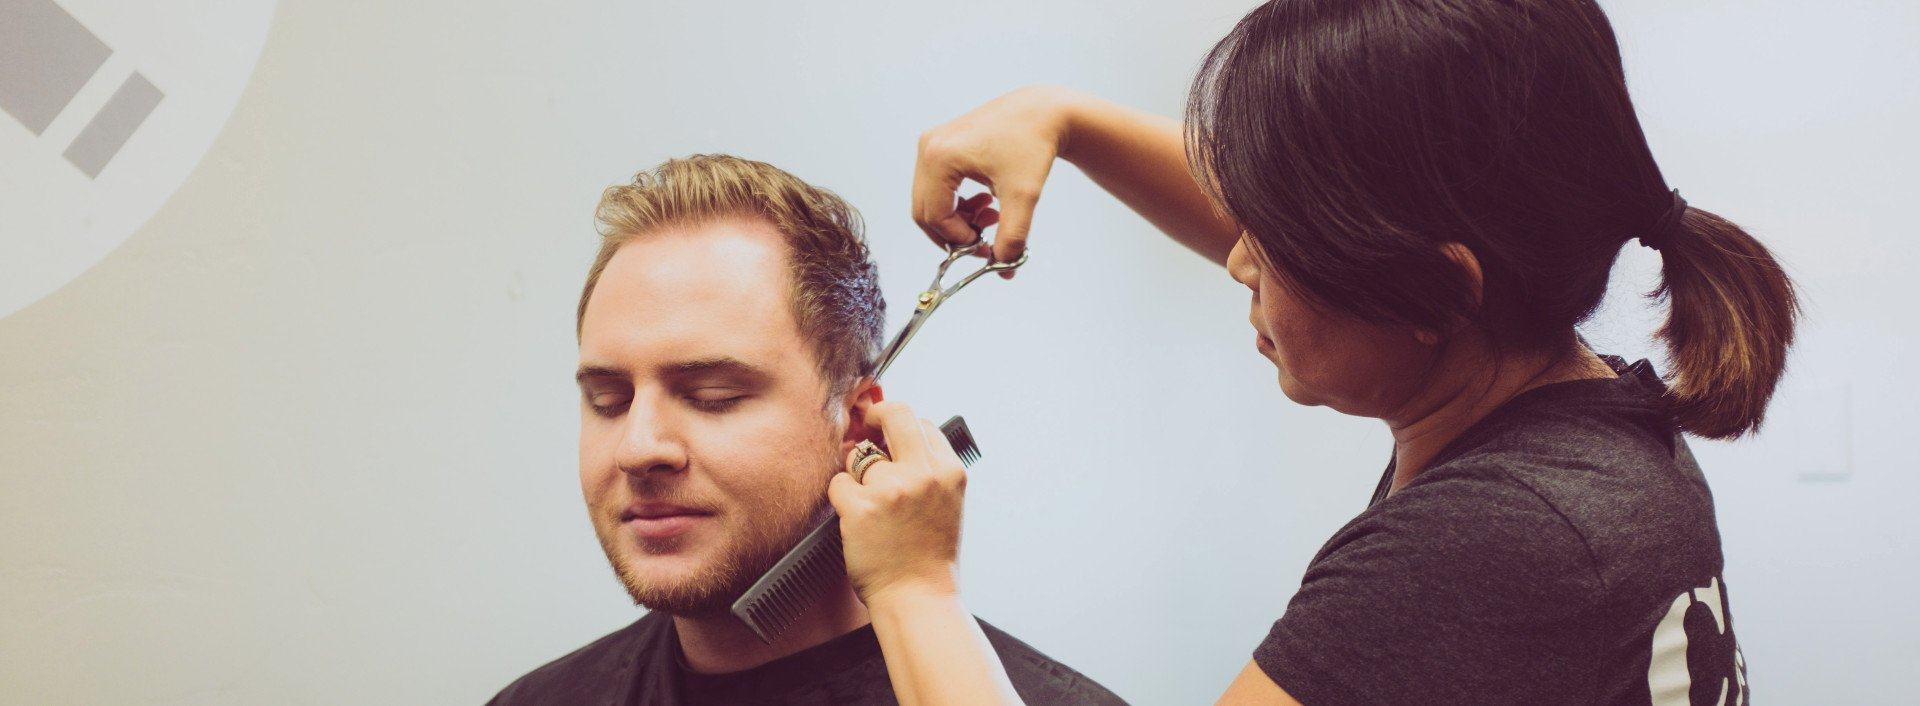 Vocabulary for the Hairdresser: a man getting his hair cut.